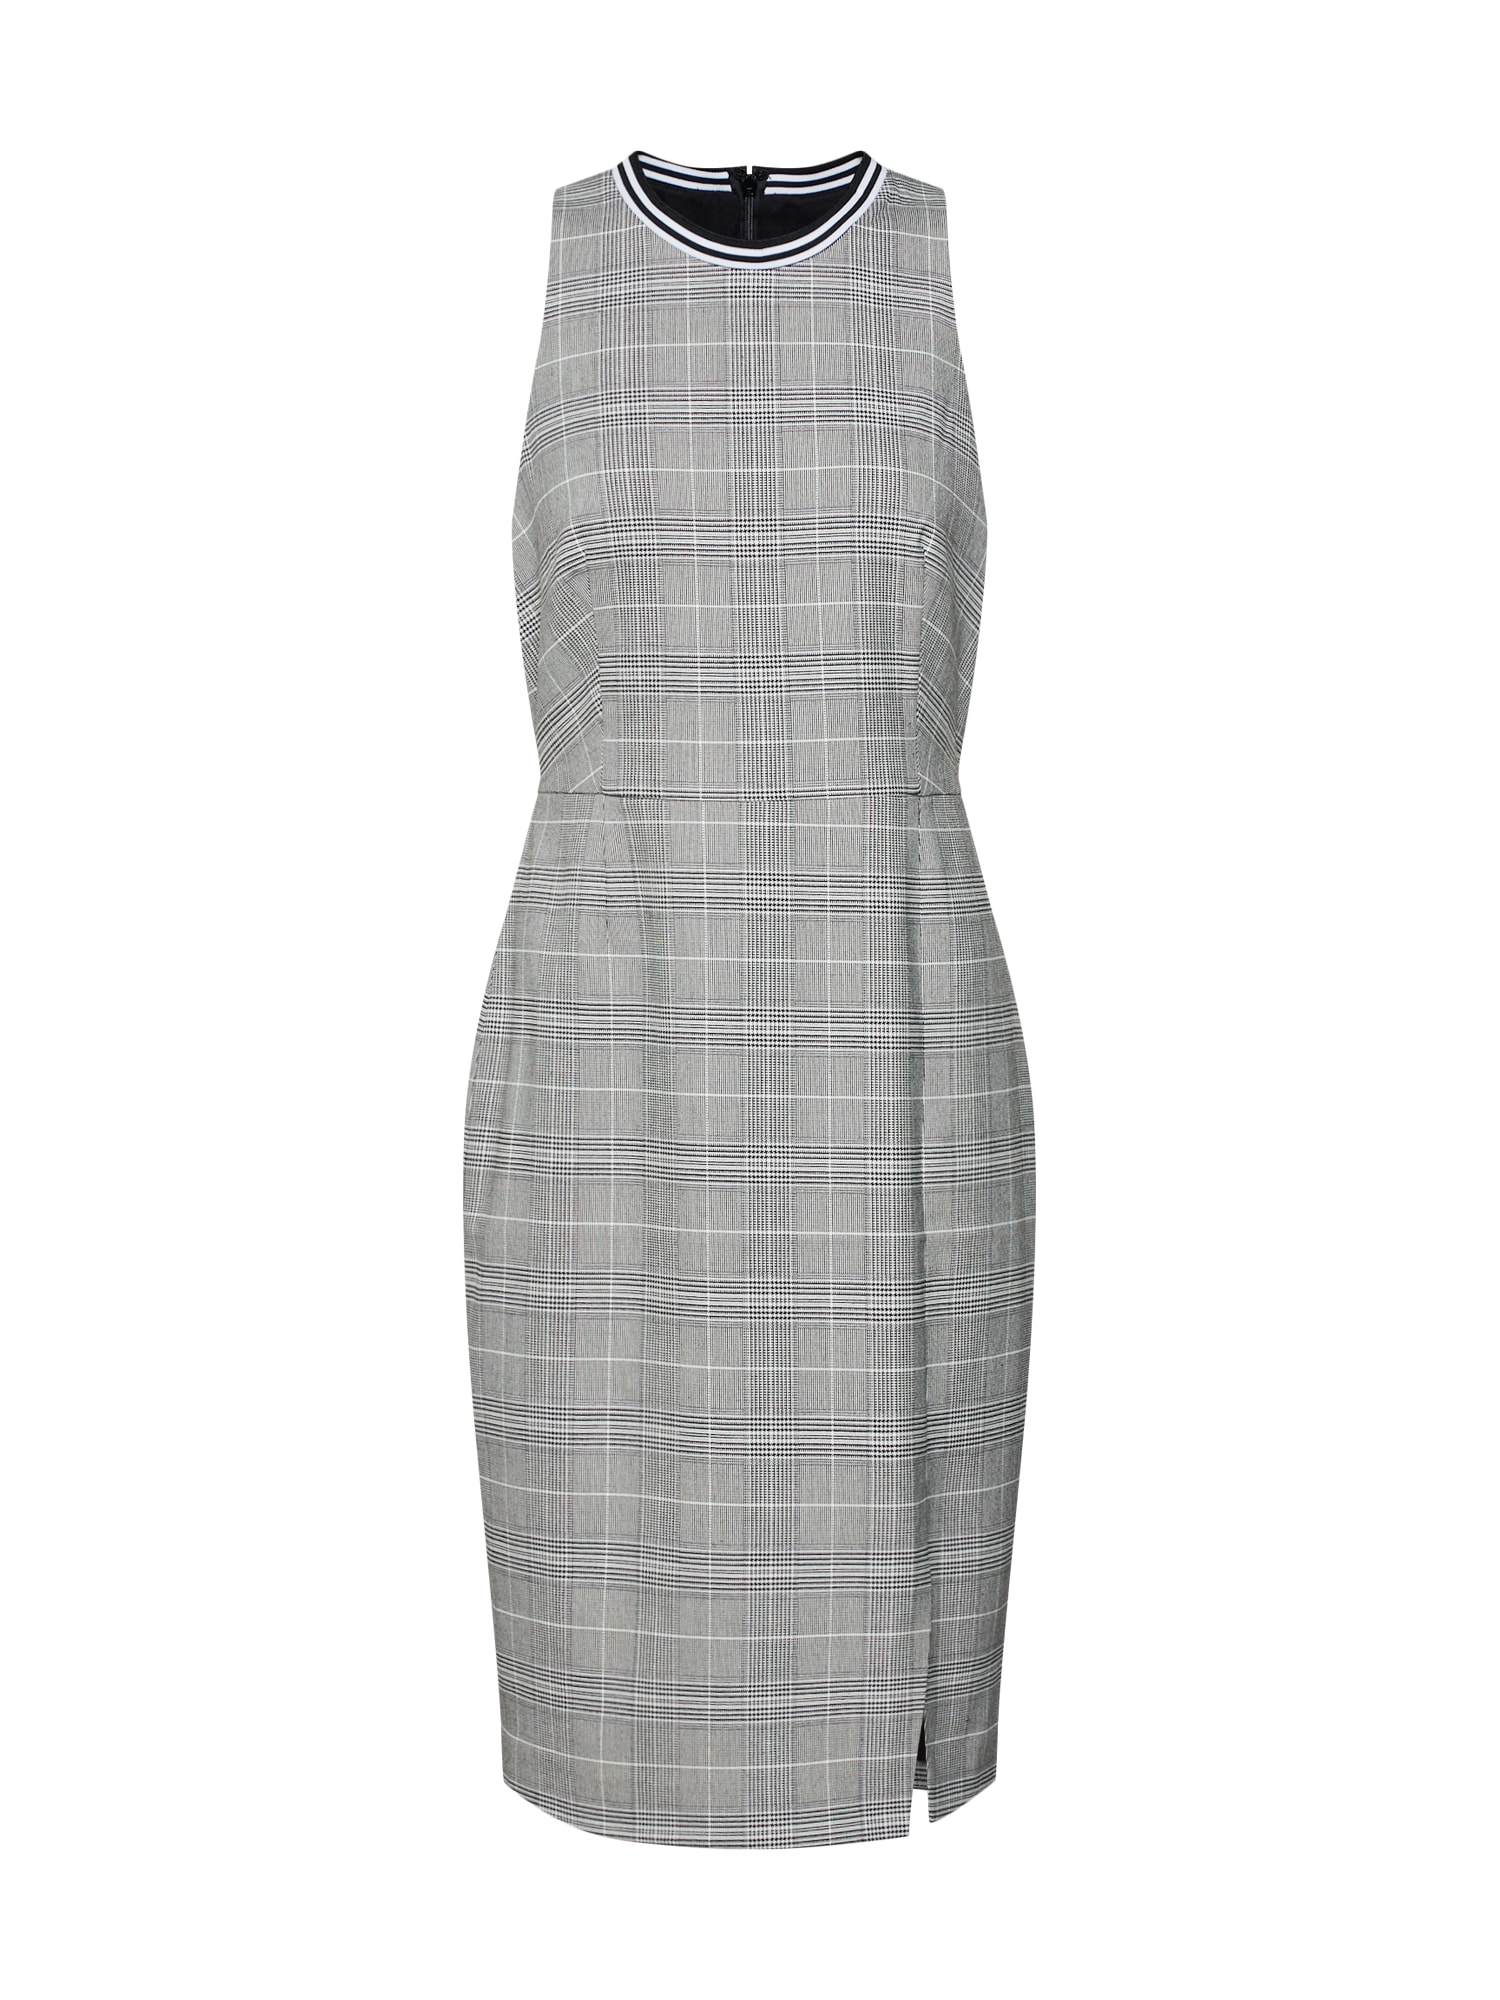 Pouzdrové šaty SL RIB TRIM SHEATH DRESS PLAID šedá Banana Republic